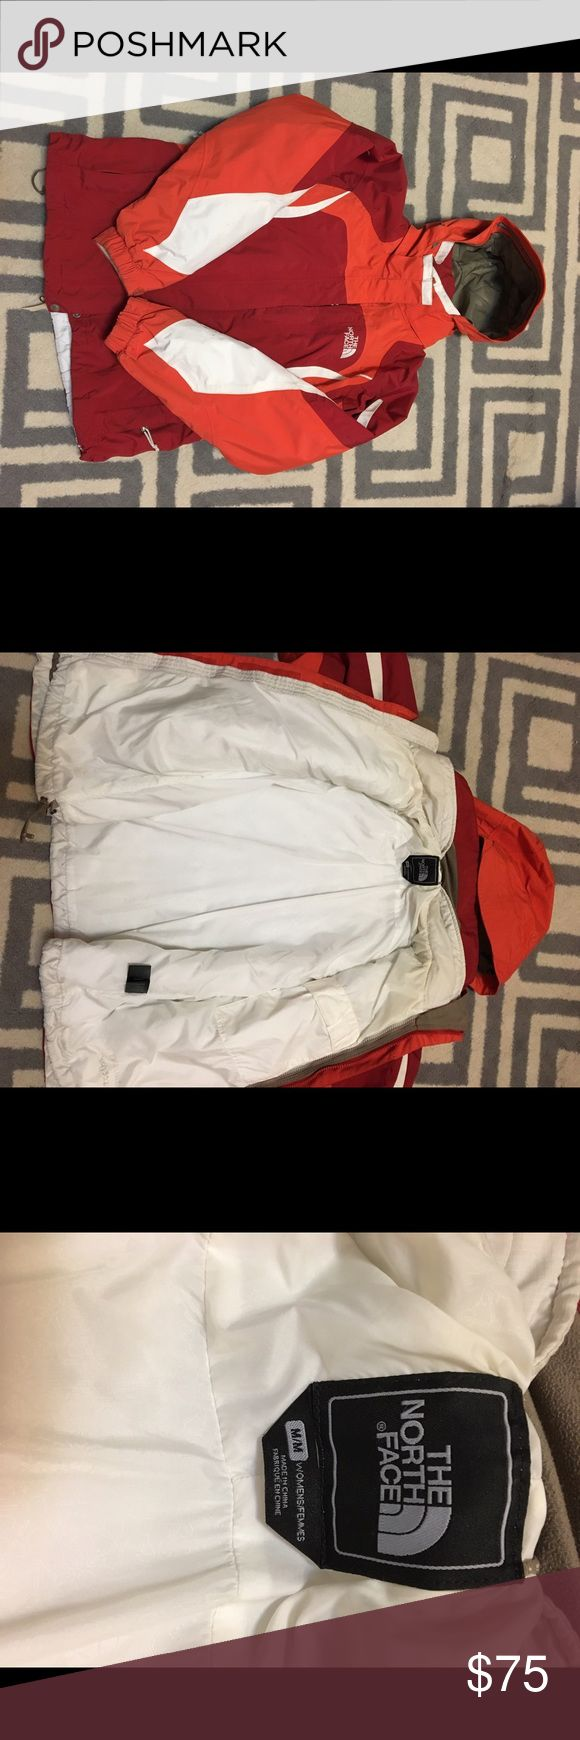 The North Face coat The North Face winter coat perfect for cold weather, extremely warm, comes with outer shell and inside liner, liner can be removed and inserted, hood can be attached and removed, size medium, good condition. North Face Jackets & Coats